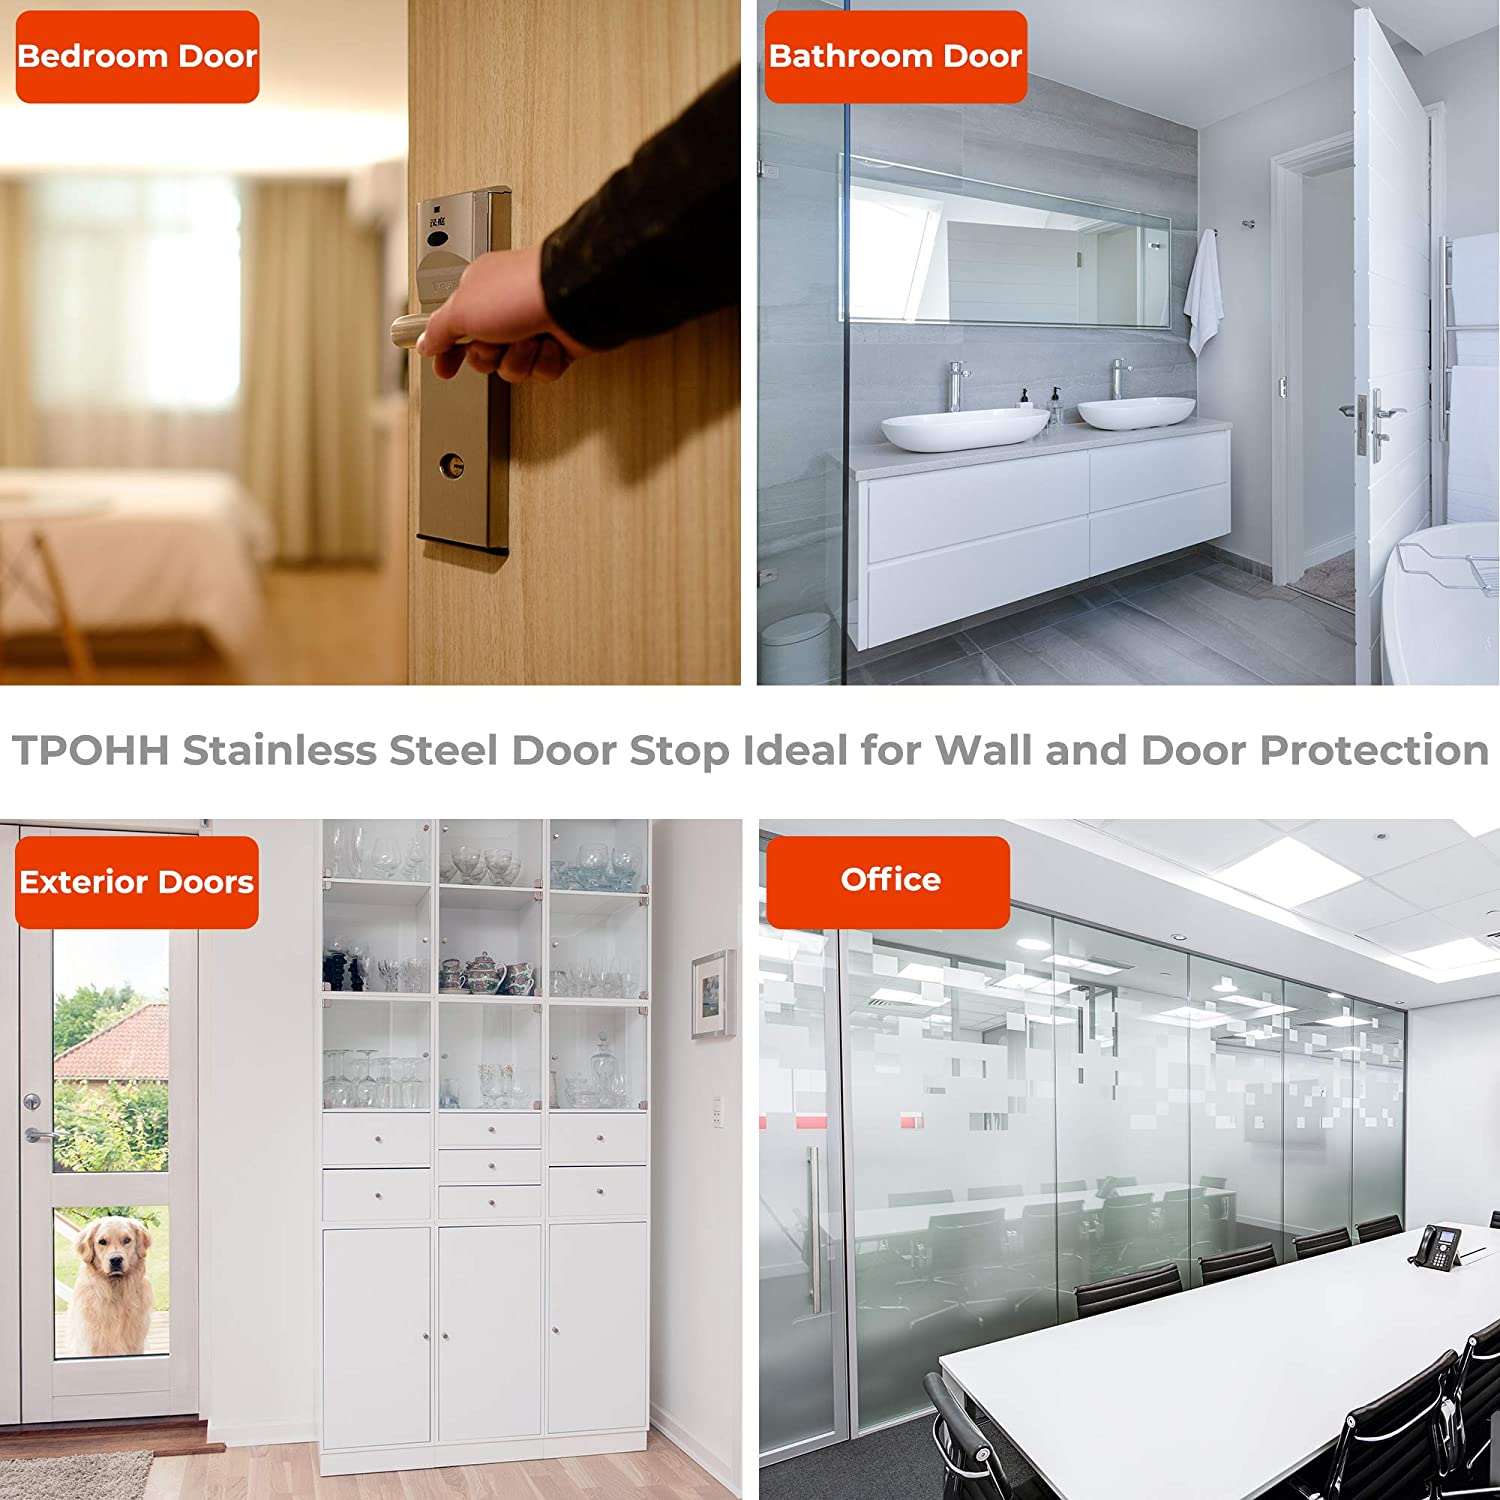 Brushed Stainless Steel TPOHH 2-3//8 Height Contemporary Safety Cylindrical Floor Mount Door Stop